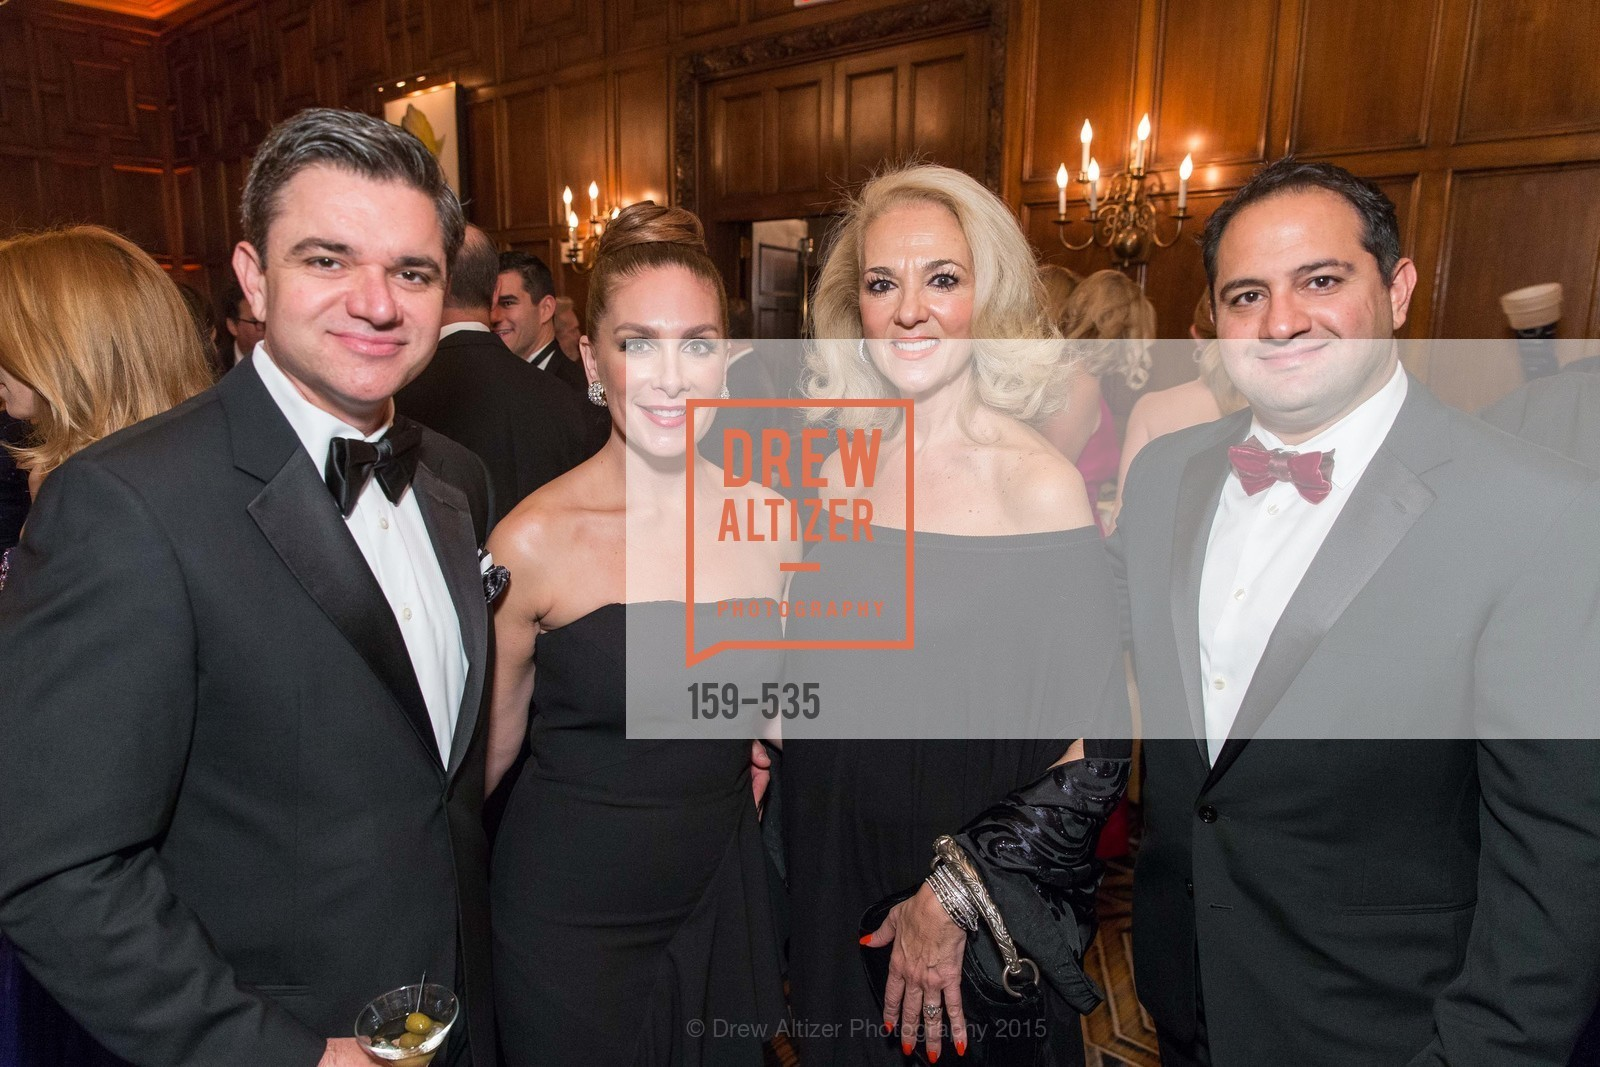 Athena Marks, Razmig Boladian, Hellenic Charity Ball, Westin St. Francis. 335 Powell Street, November 14th, 2015,Drew Altizer, Drew Altizer Photography, full-service agency, private events, San Francisco photographer, photographer california